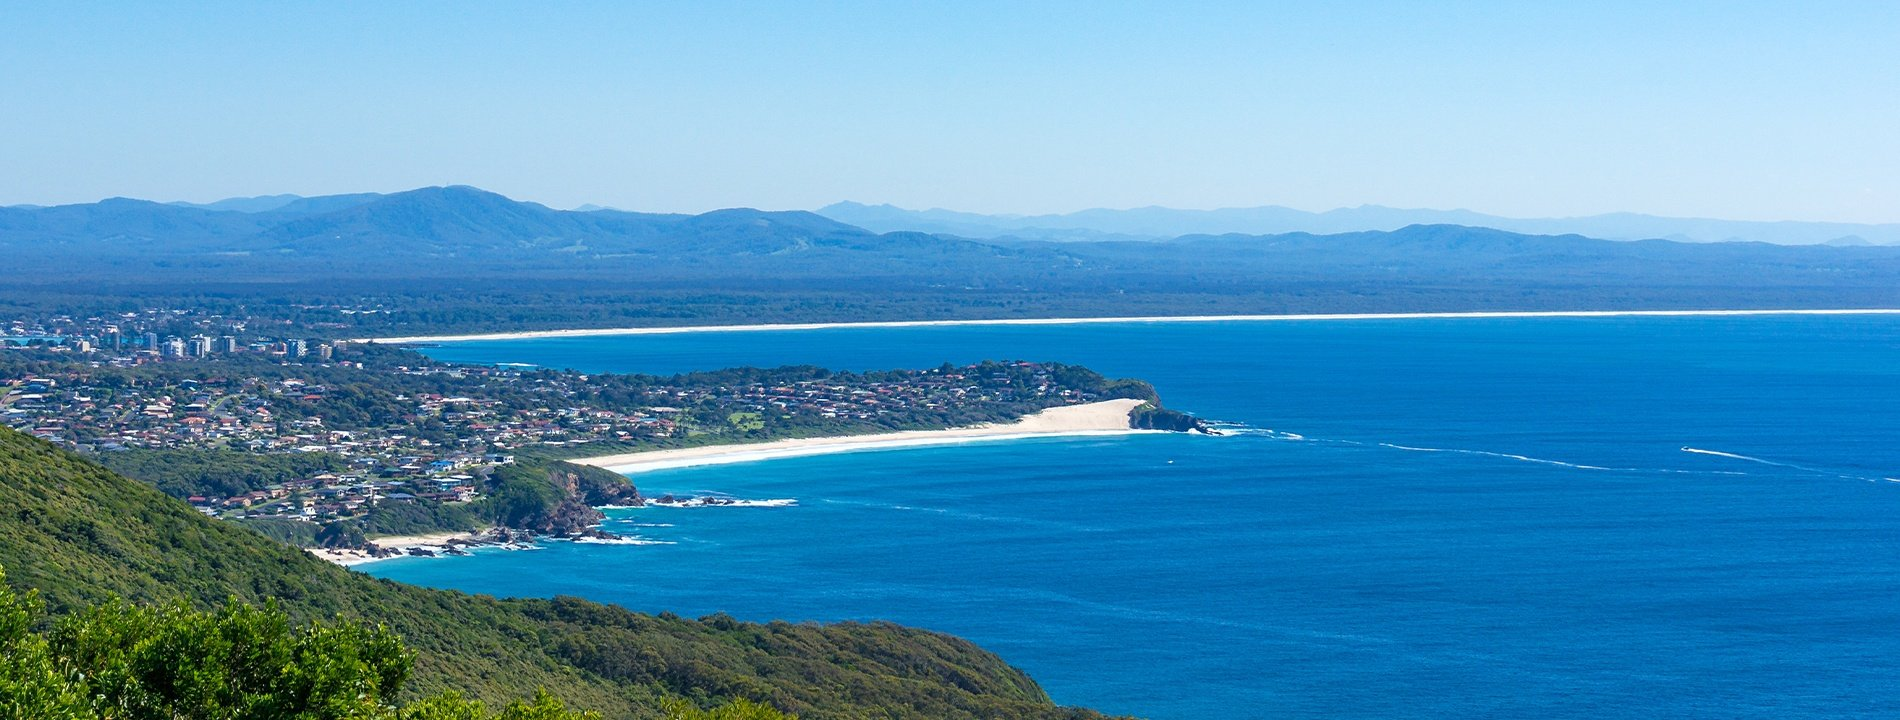 10 reasons to visit Port Stephens this spring